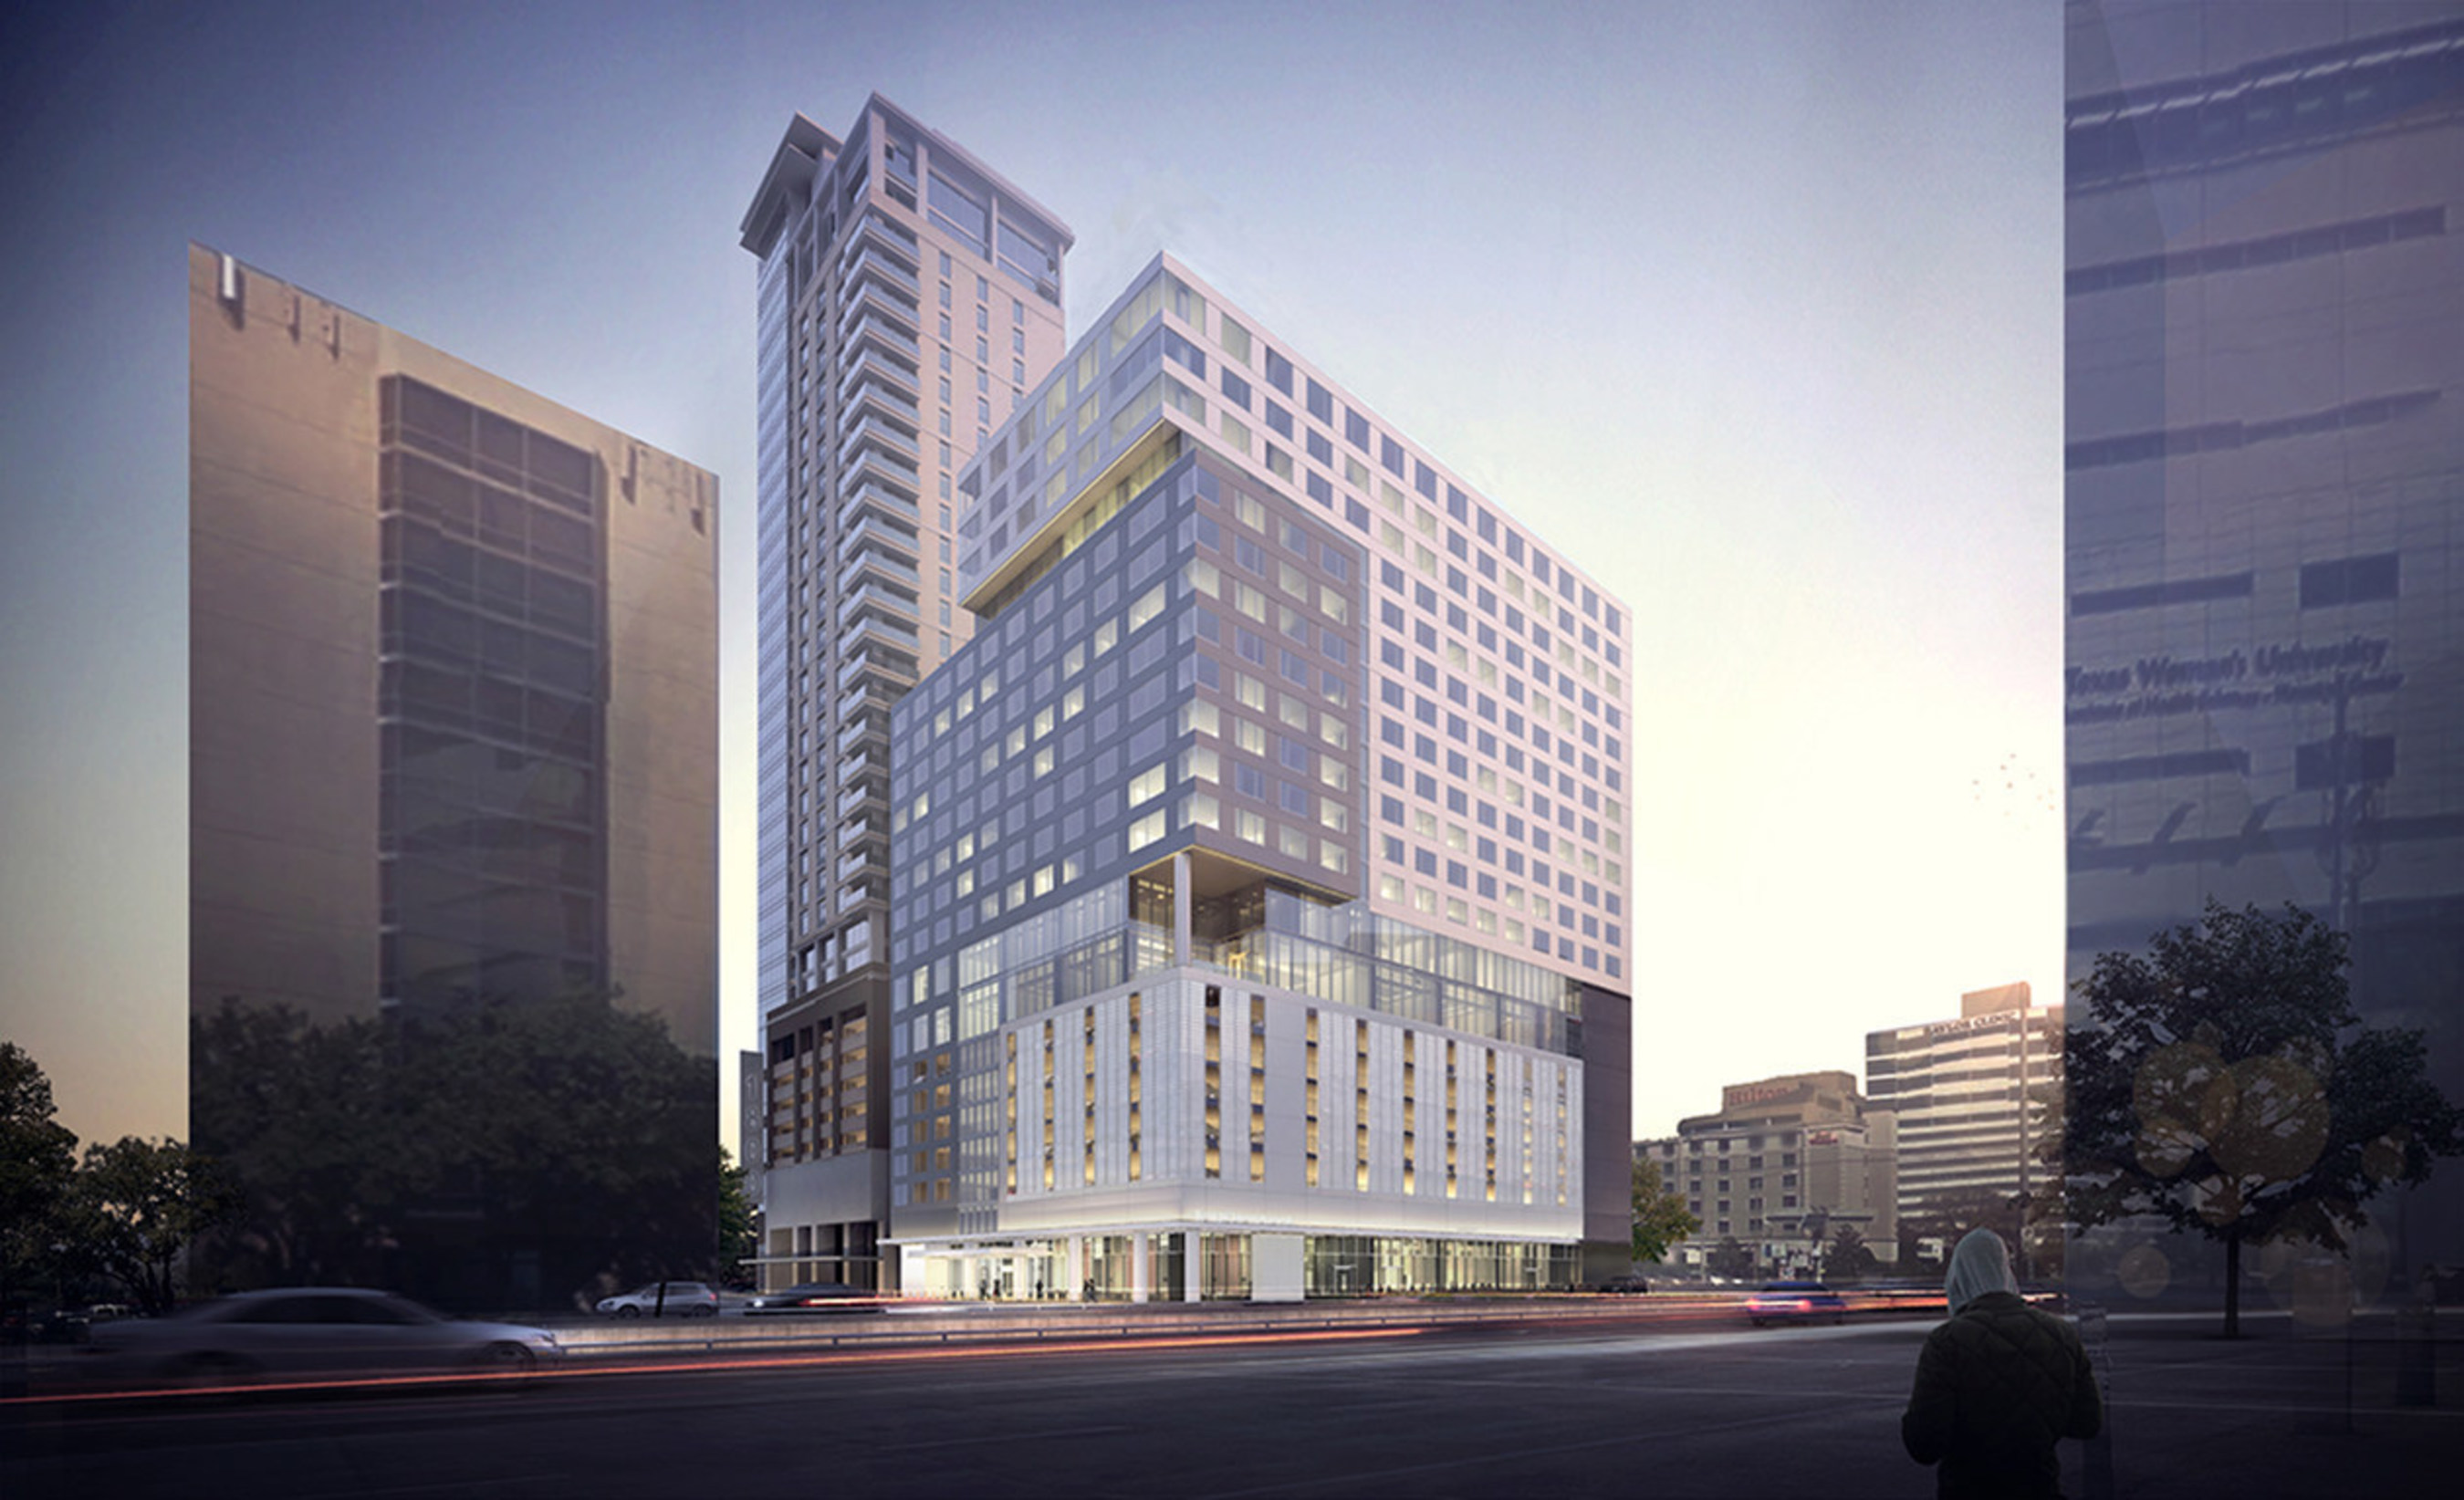 Construction has started on new InterContinental(R) Houston Medical Center hotel and Greystar Latitude Med Center luxury apartment tower in Houston, Texas, adjacent to the world's largest medical complex.